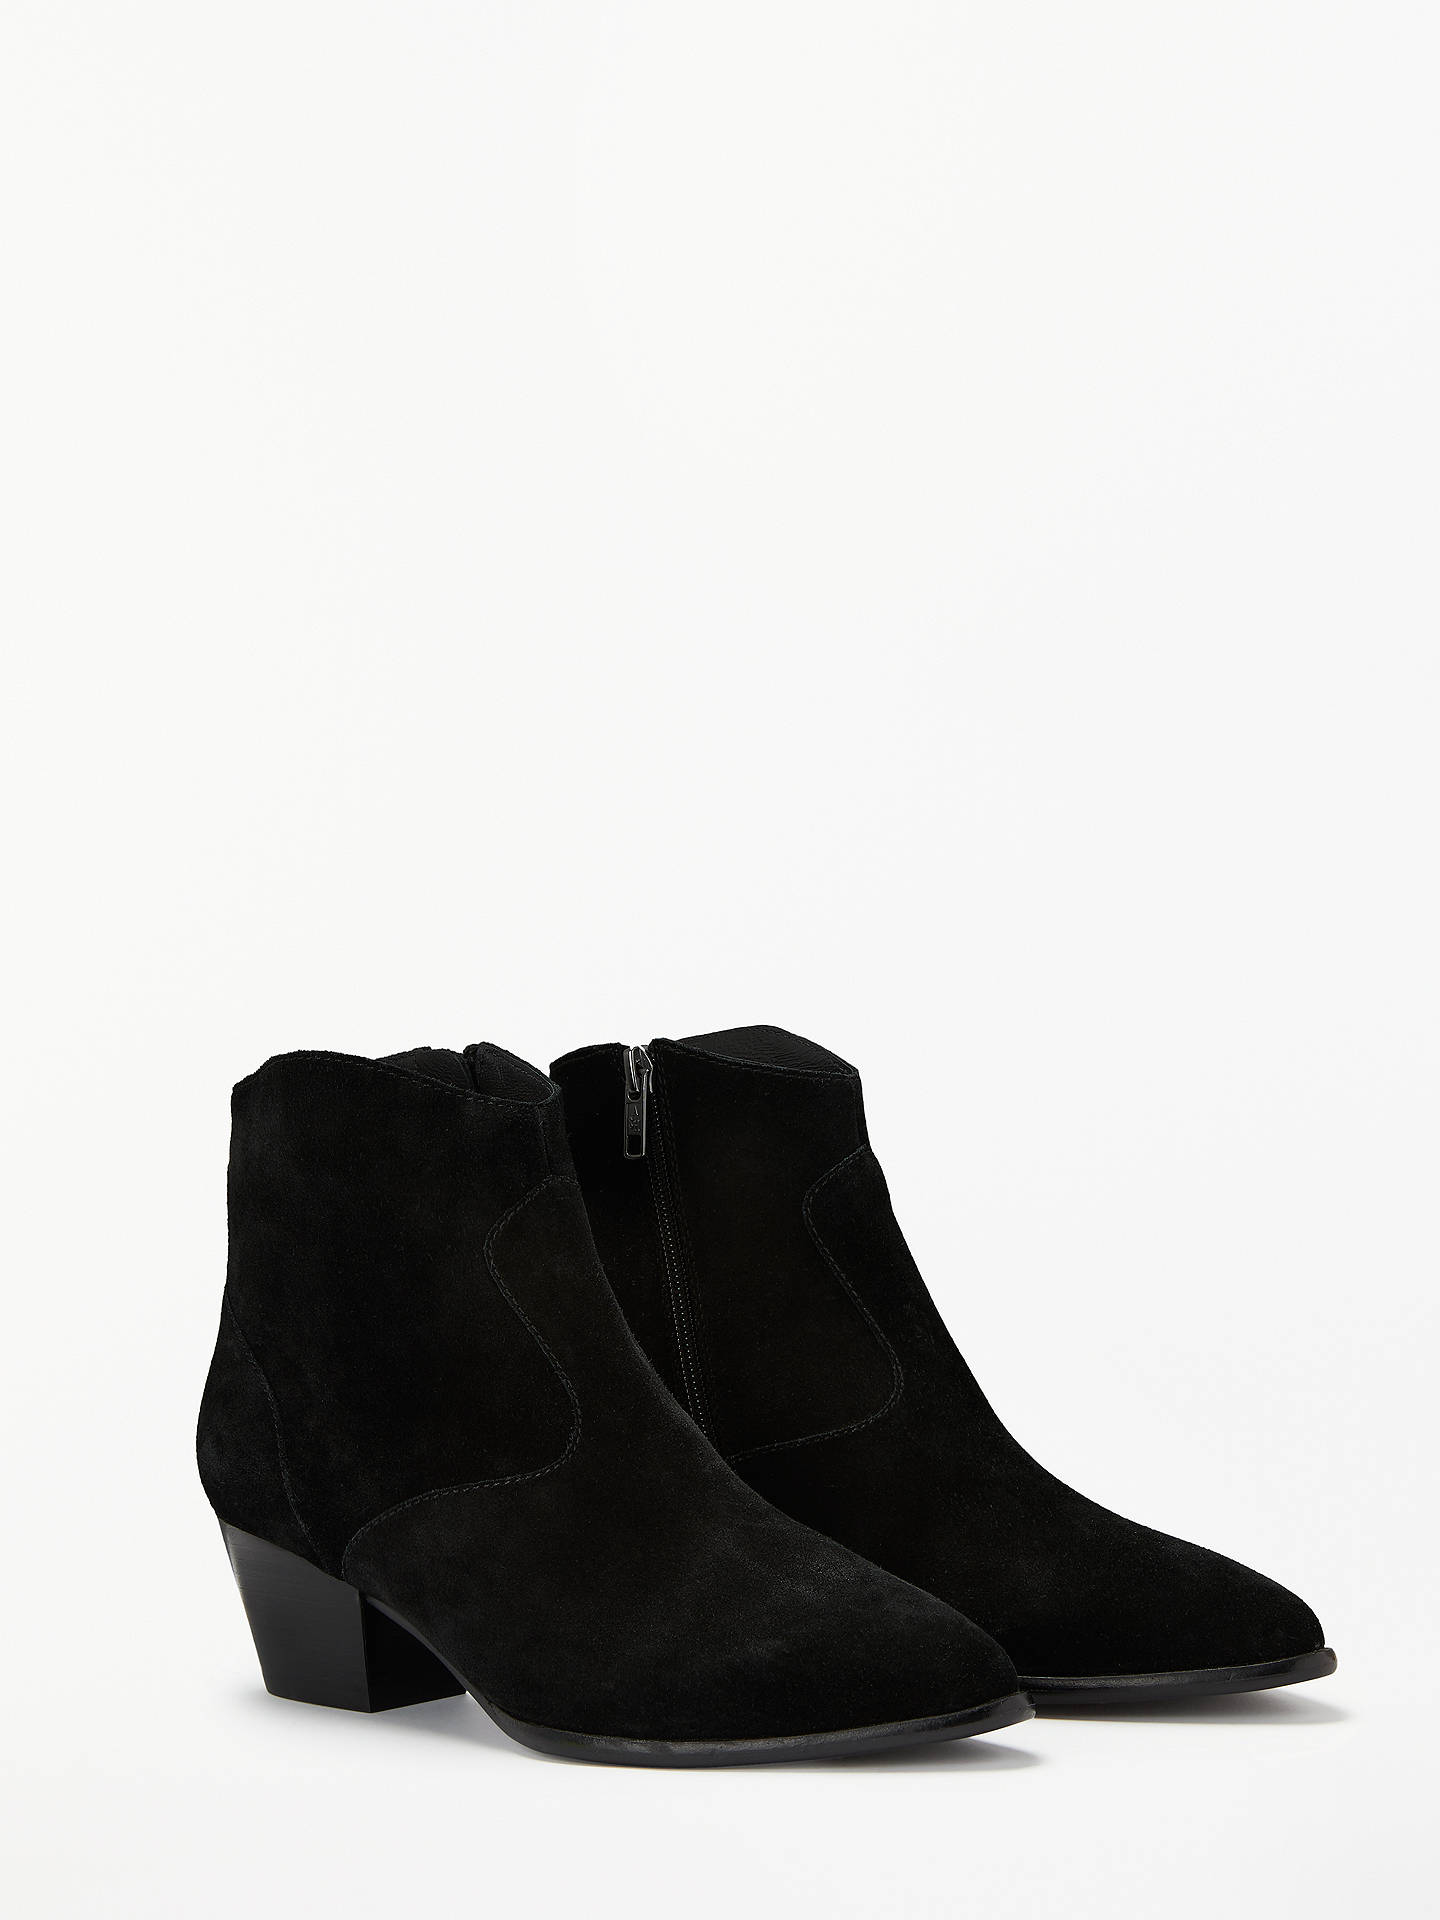 Buy Ash Heidi Block Heel Ankle Boots, Black Leather, 5 Online at johnlewis.com